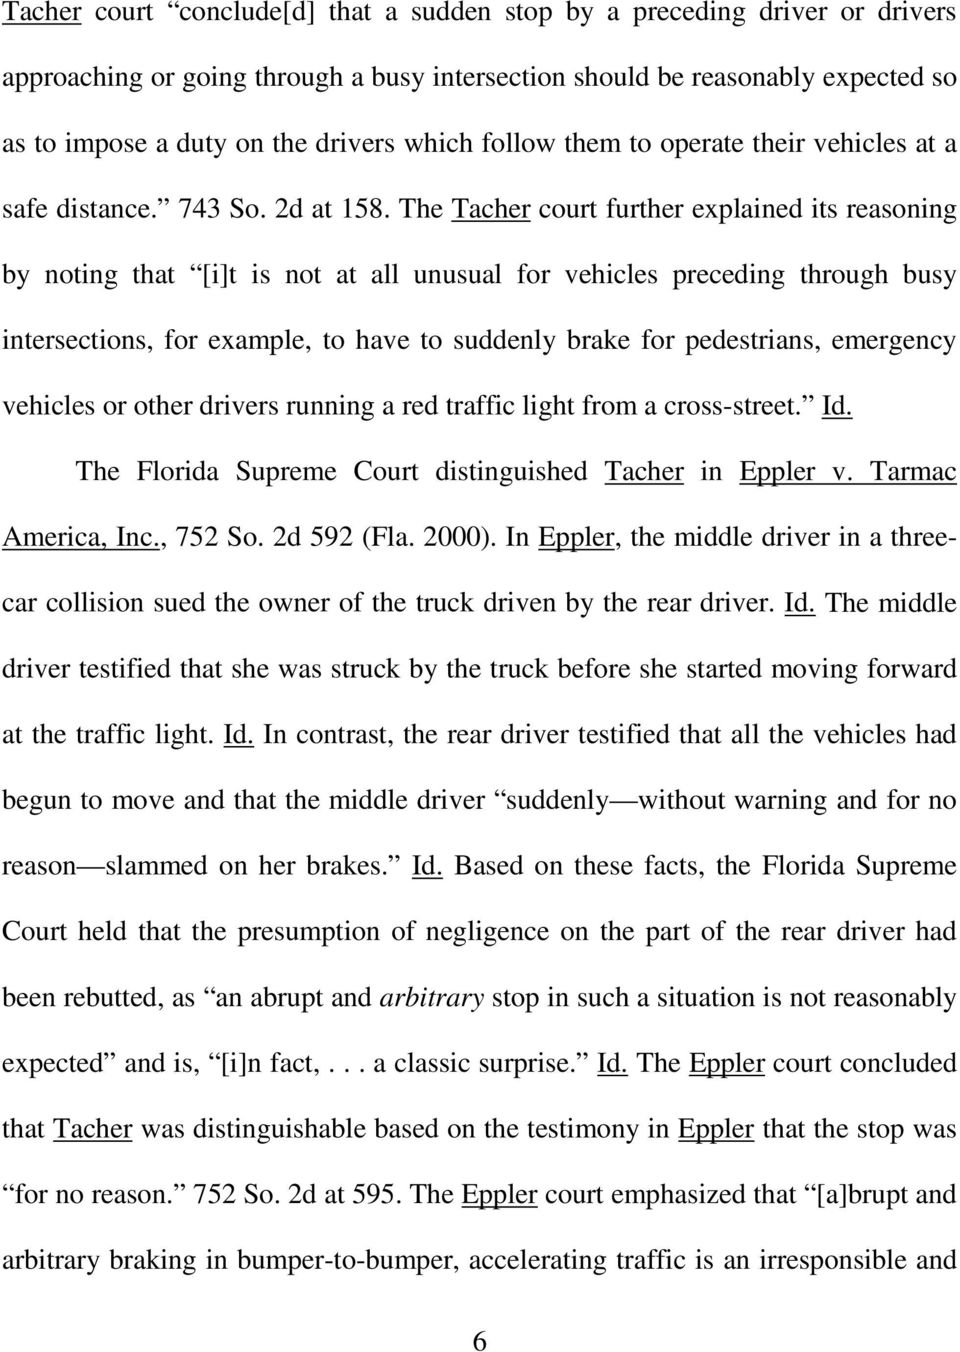 The Tacher court further explained its reasoning by noting that [i]t is not at all unusual for vehicles preceding through busy intersections, for example, to have to suddenly brake for pedestrians,